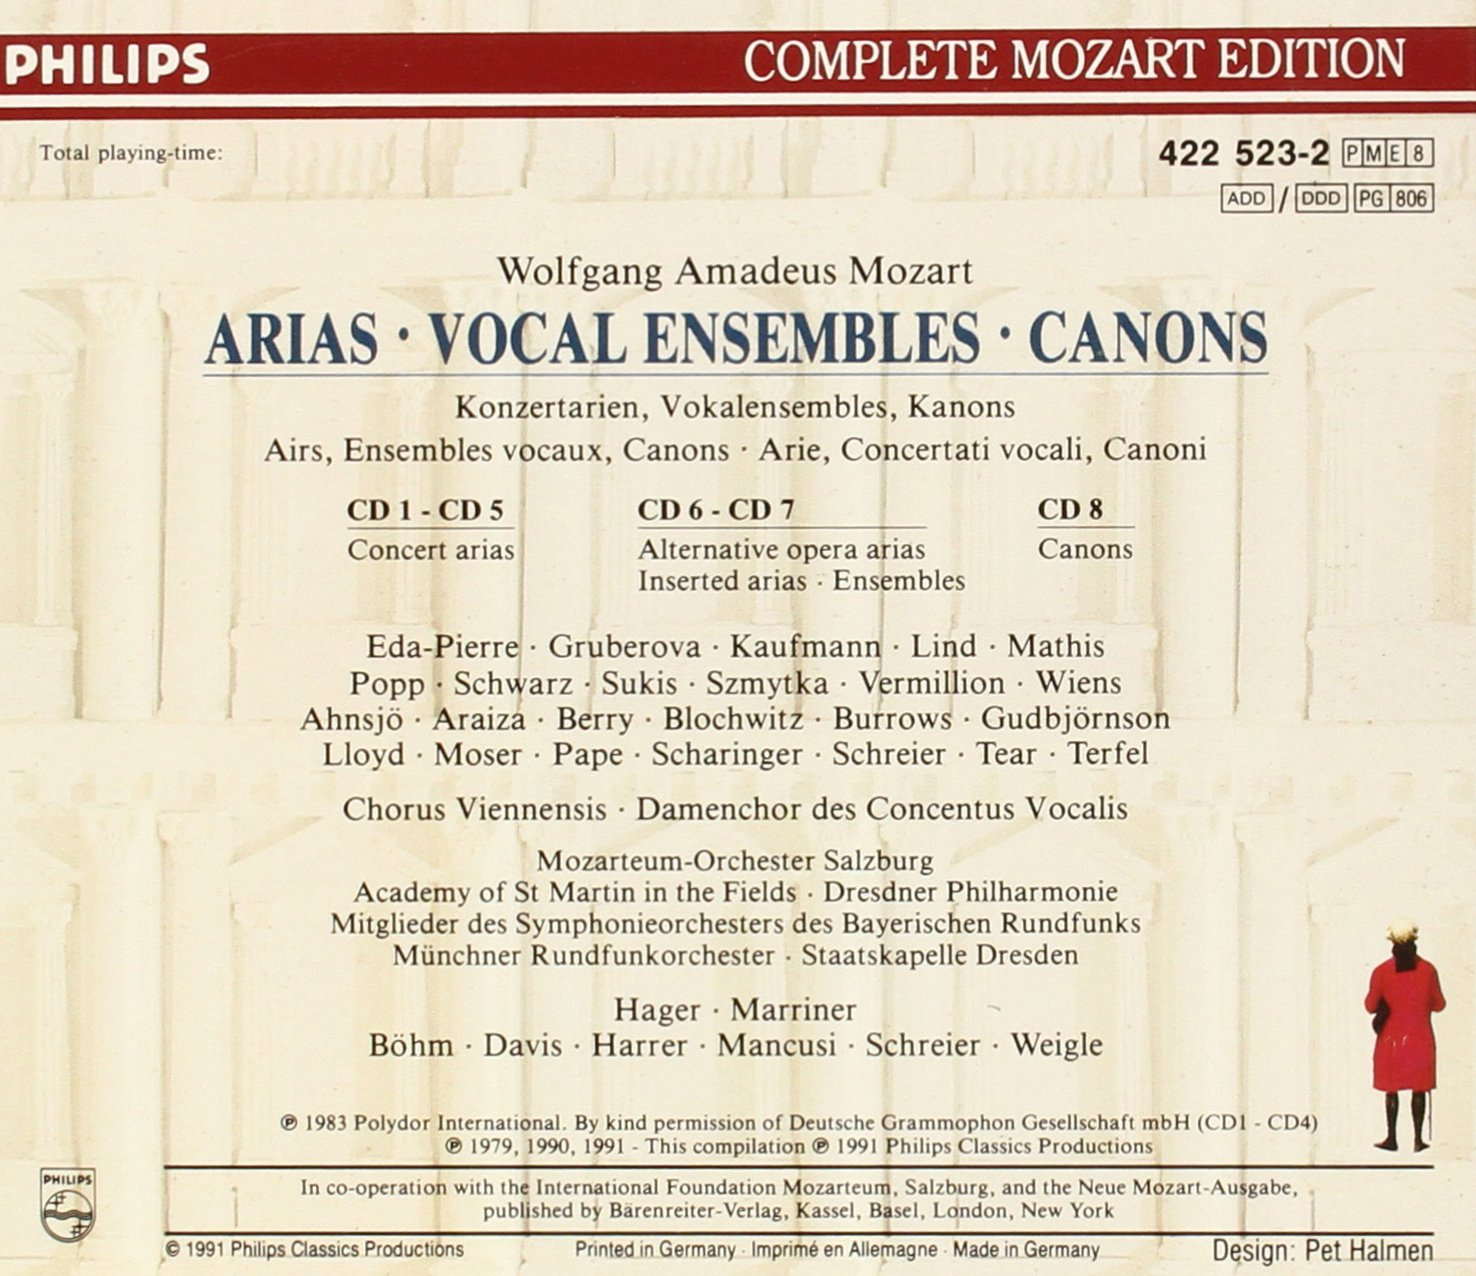 Mozart: Arias, Vocal Ensembles & Canons (Philips Complete Mozart Edition, Vol. 23) by Philips